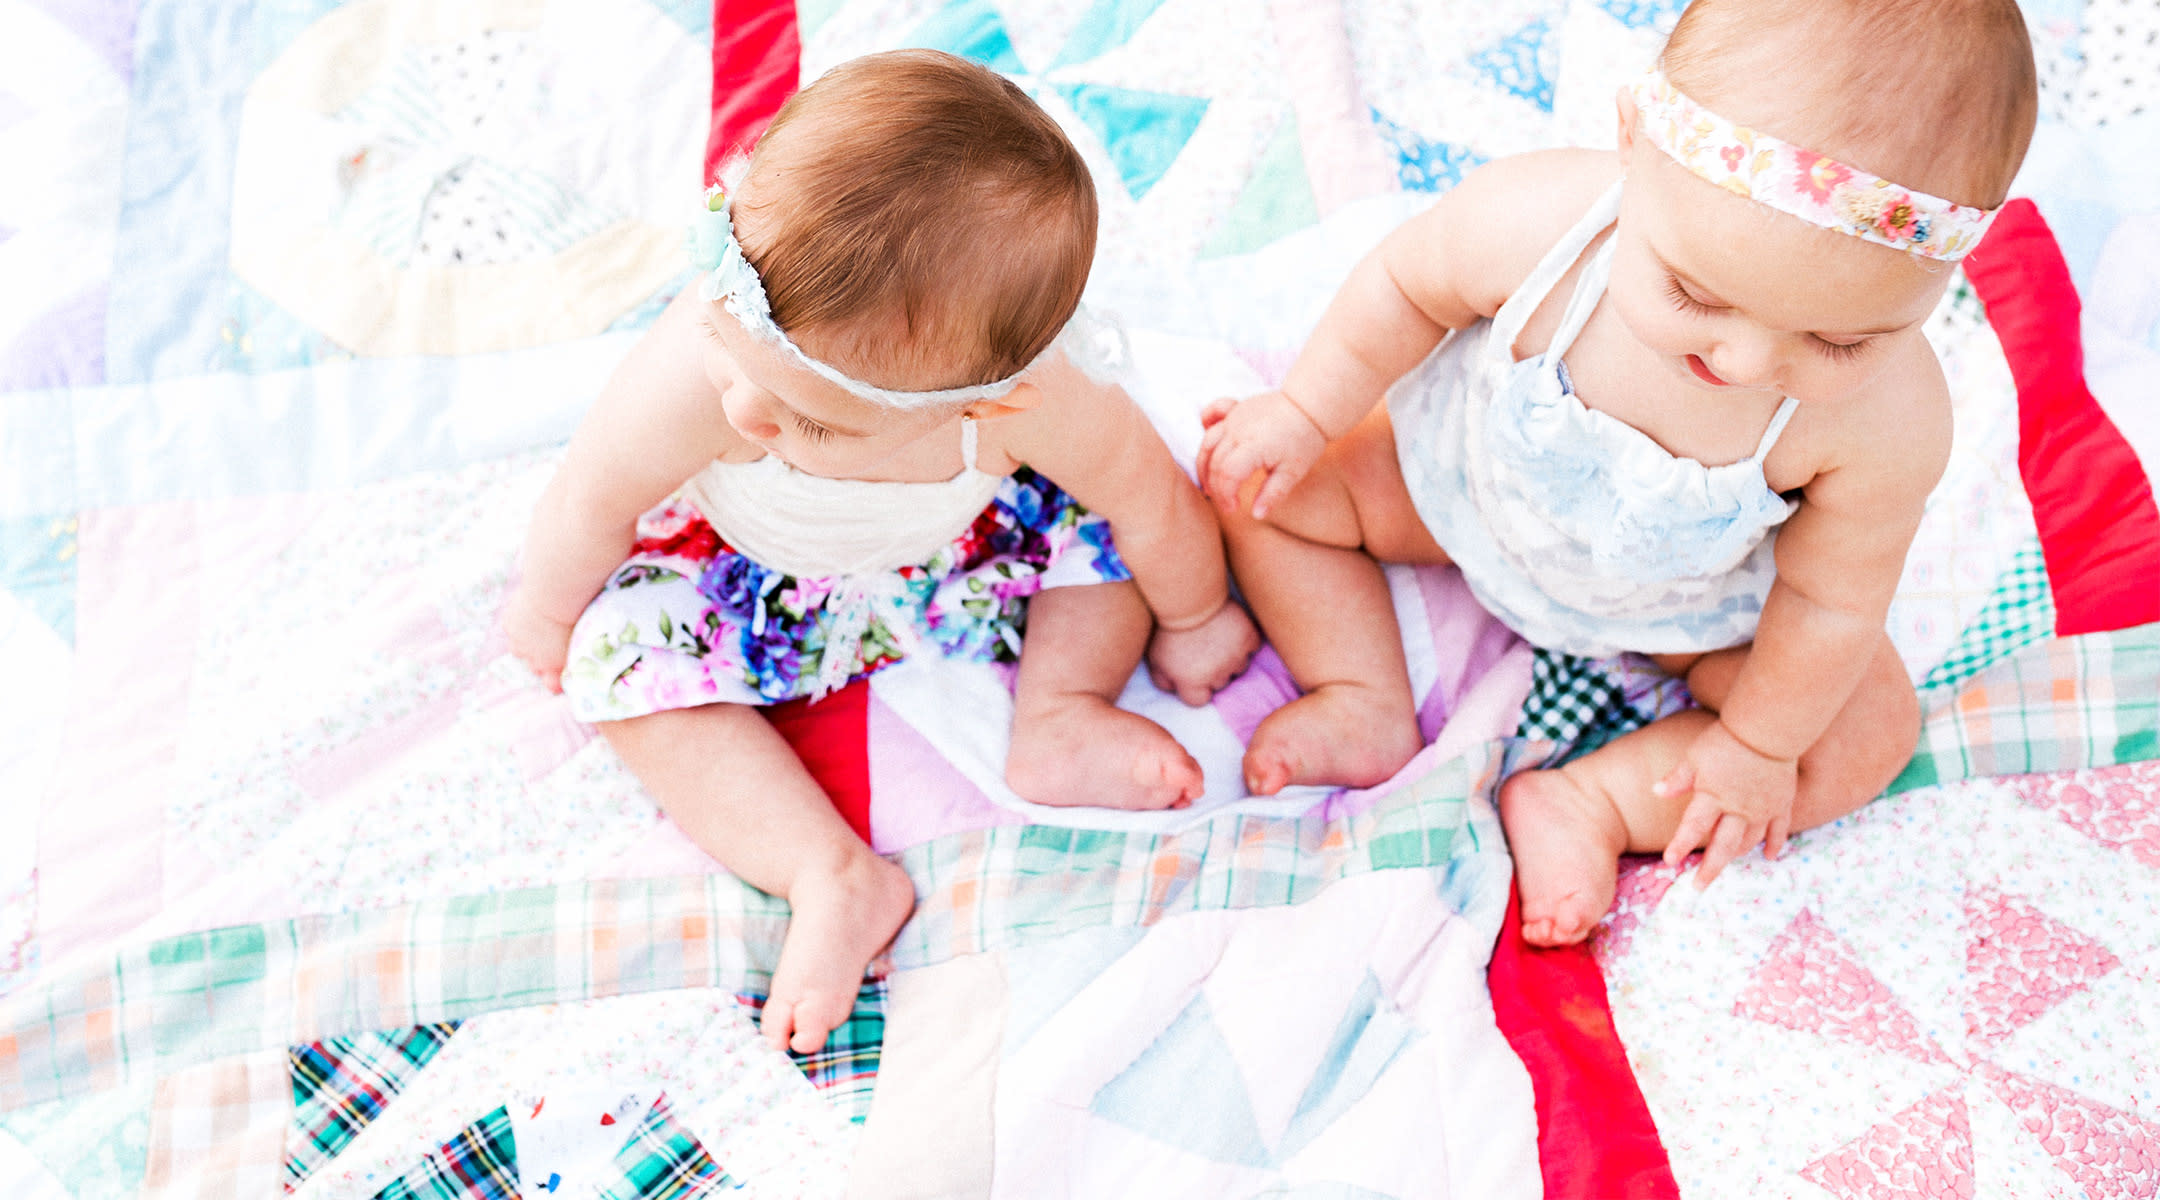 twins playing outside on blanket